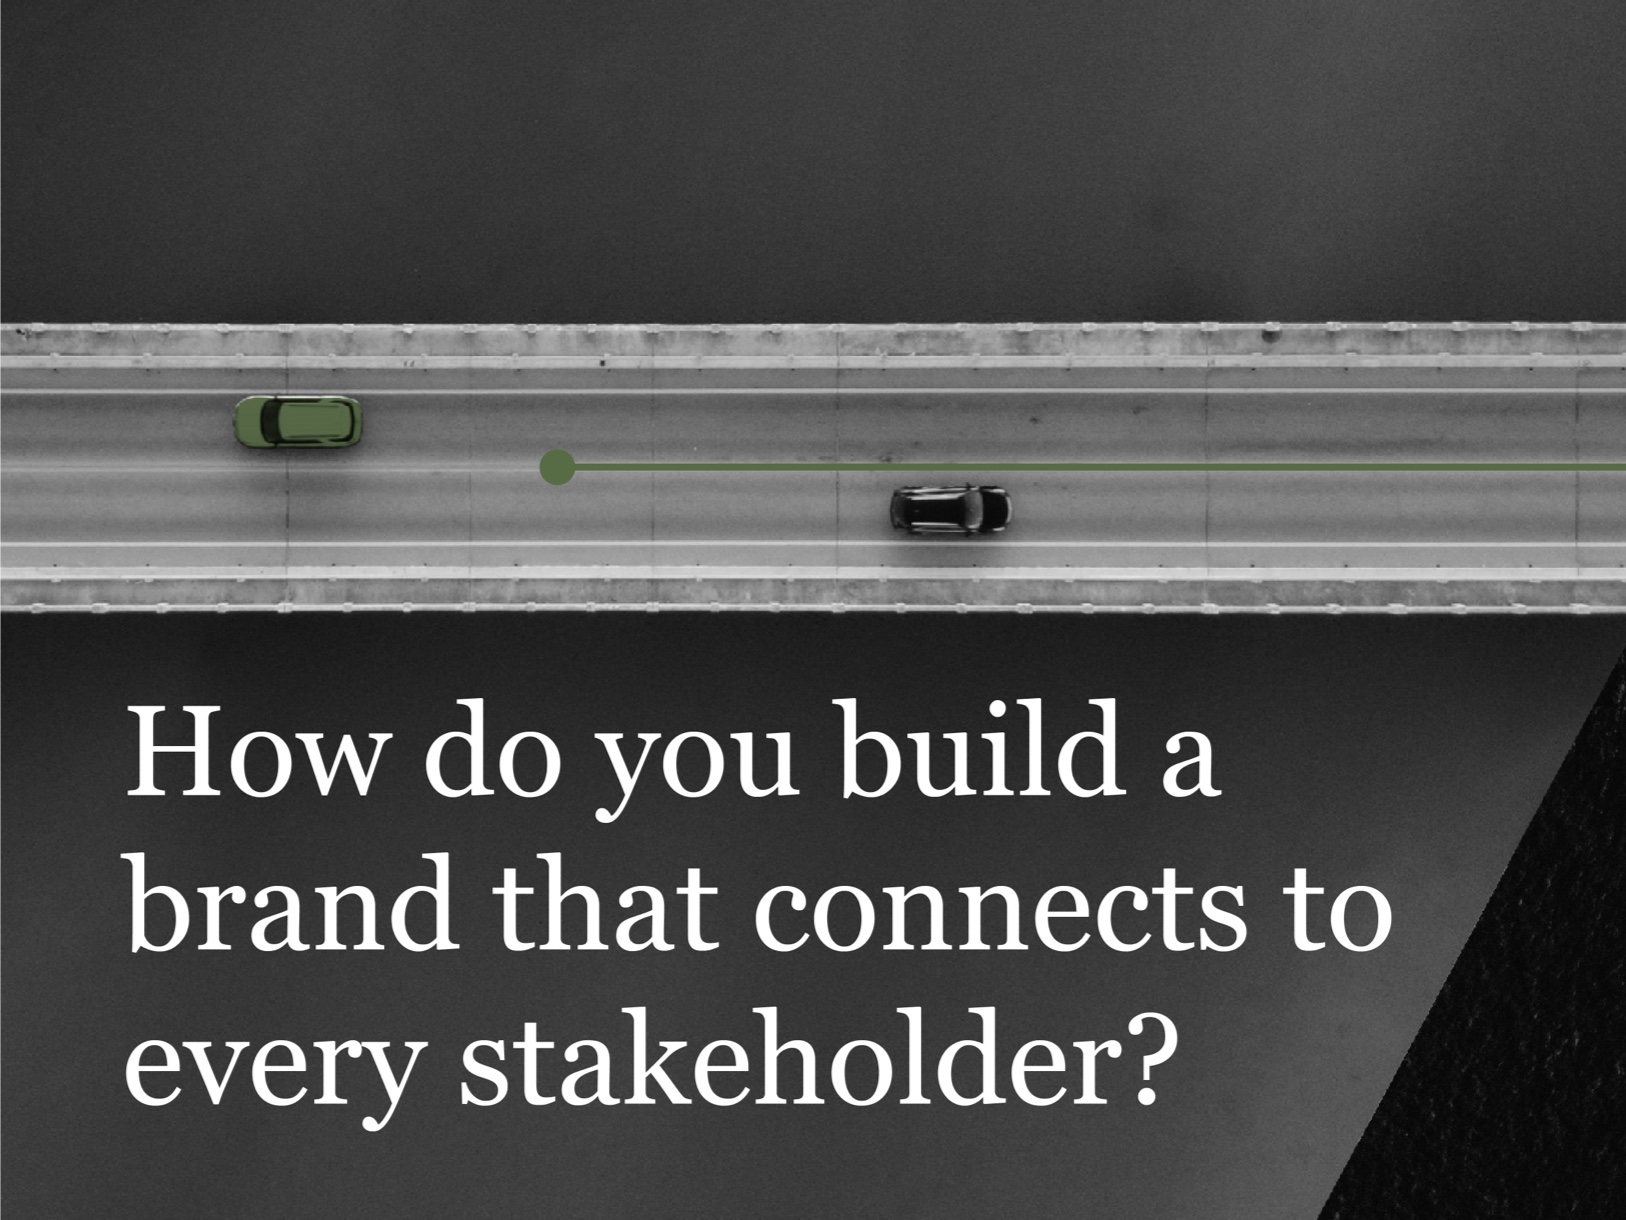 How to Build a Brand That Connects to Every Stakeholder